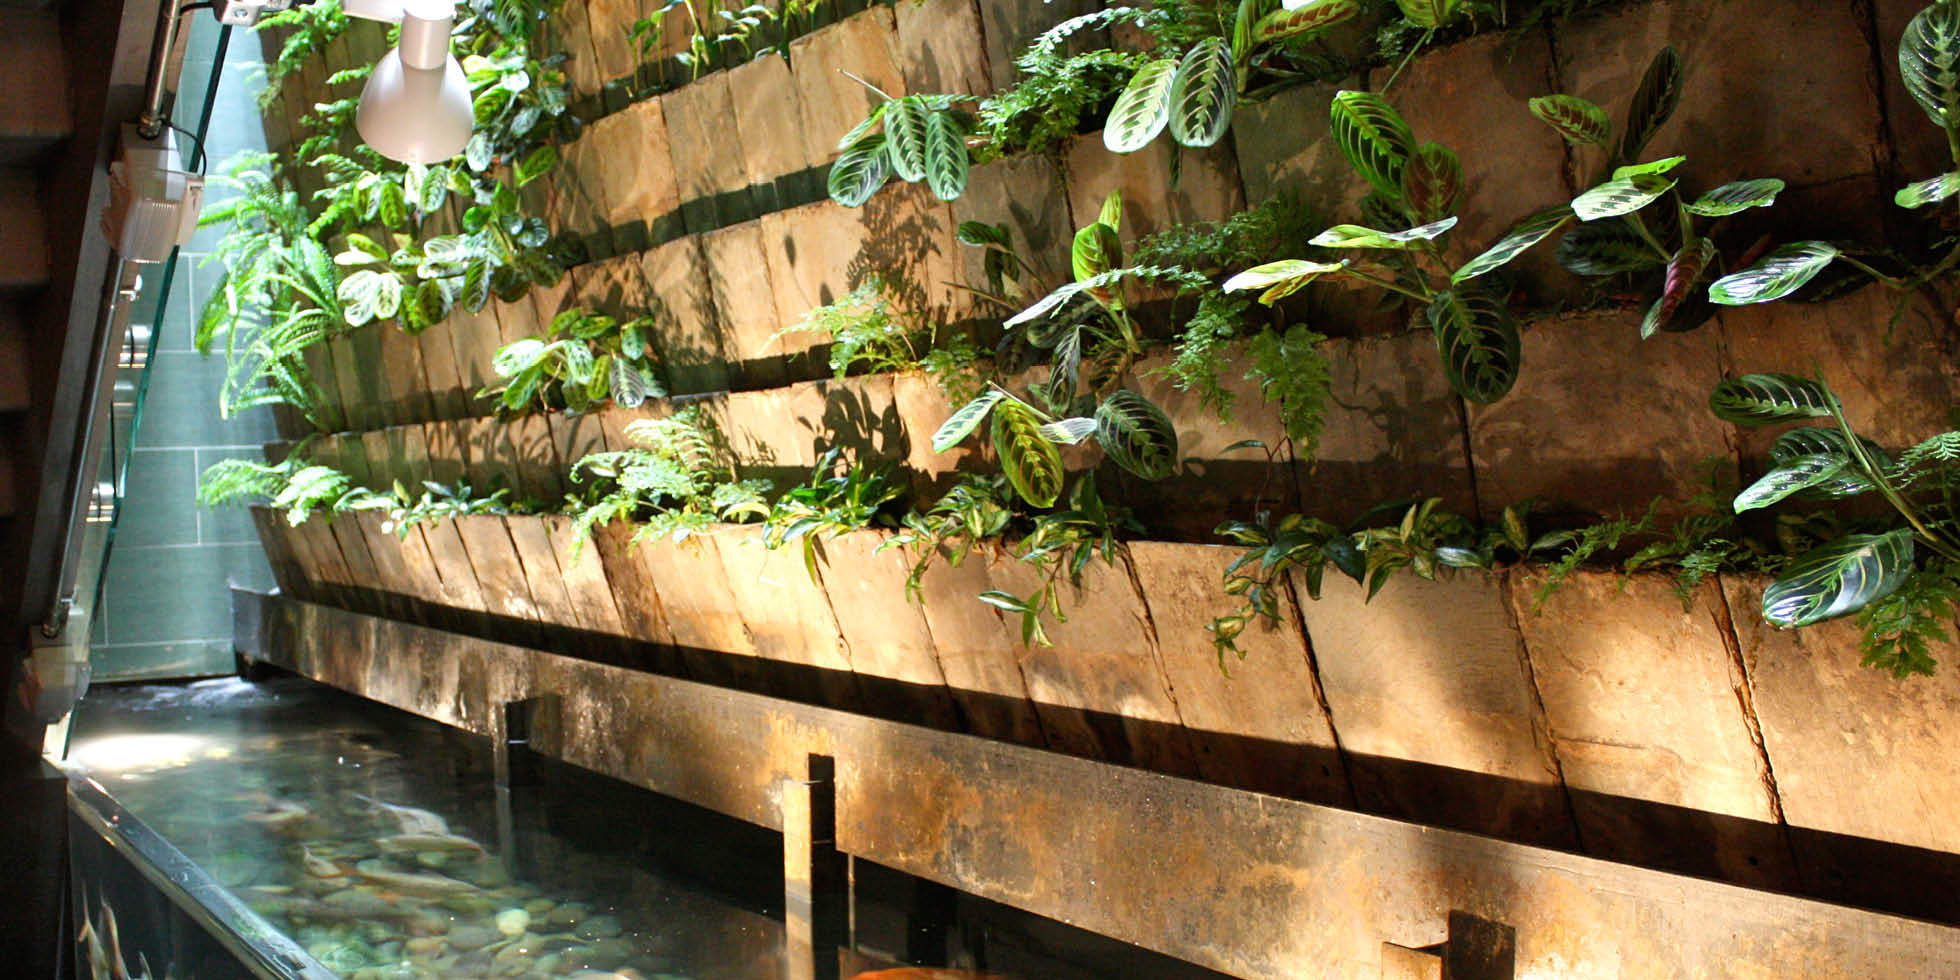 The Moss Room Restaurant Living Wall by Habitat Horticulture - View 3